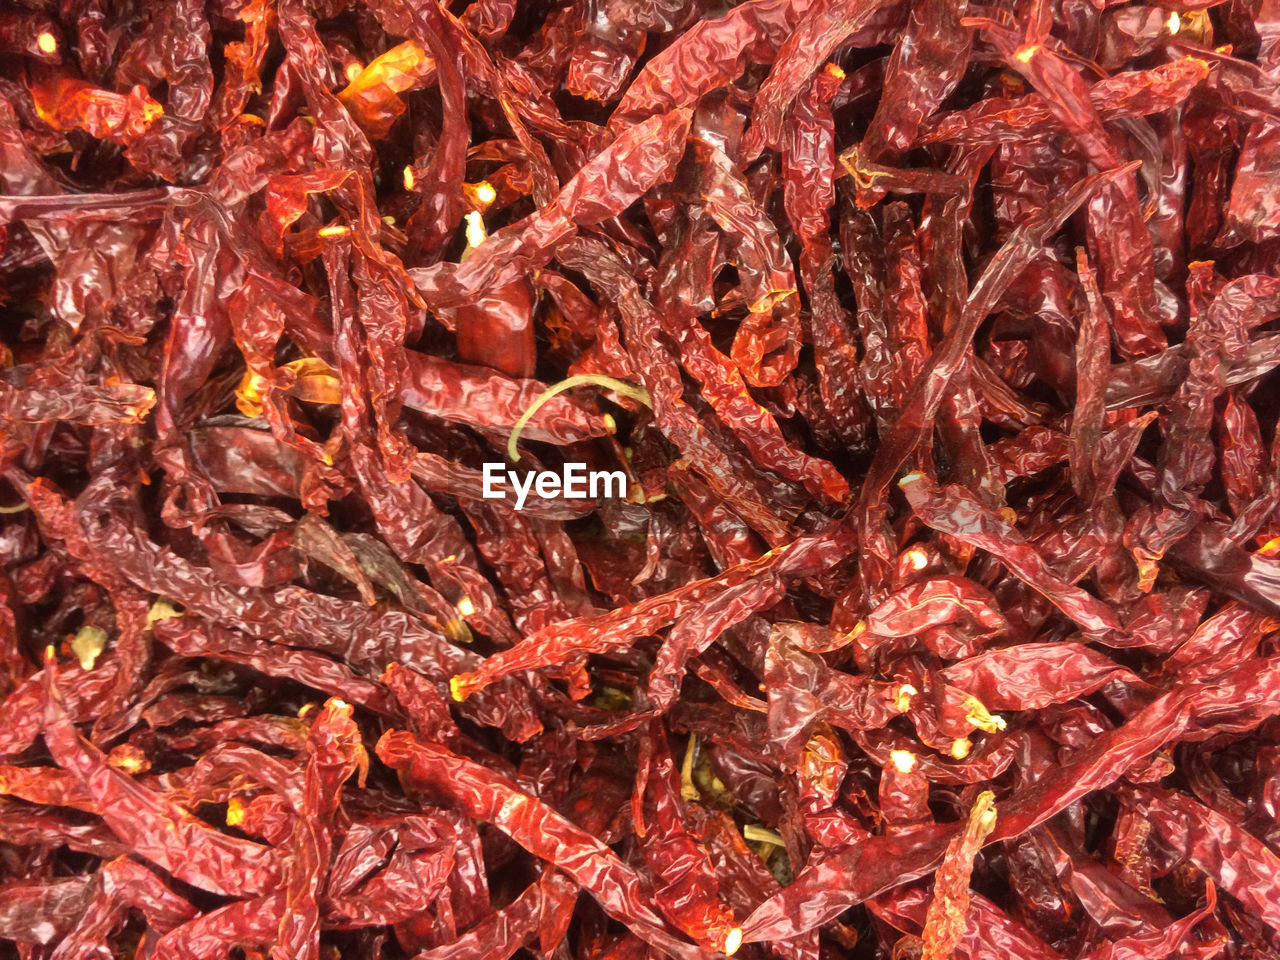 full frame, backgrounds, food and drink, food, abundance, red, no people, large group of objects, still life, chili pepper, indoors, spice, freshness, close-up, red chili pepper, healthy eating, wellbeing, seafood, dried food, pepper